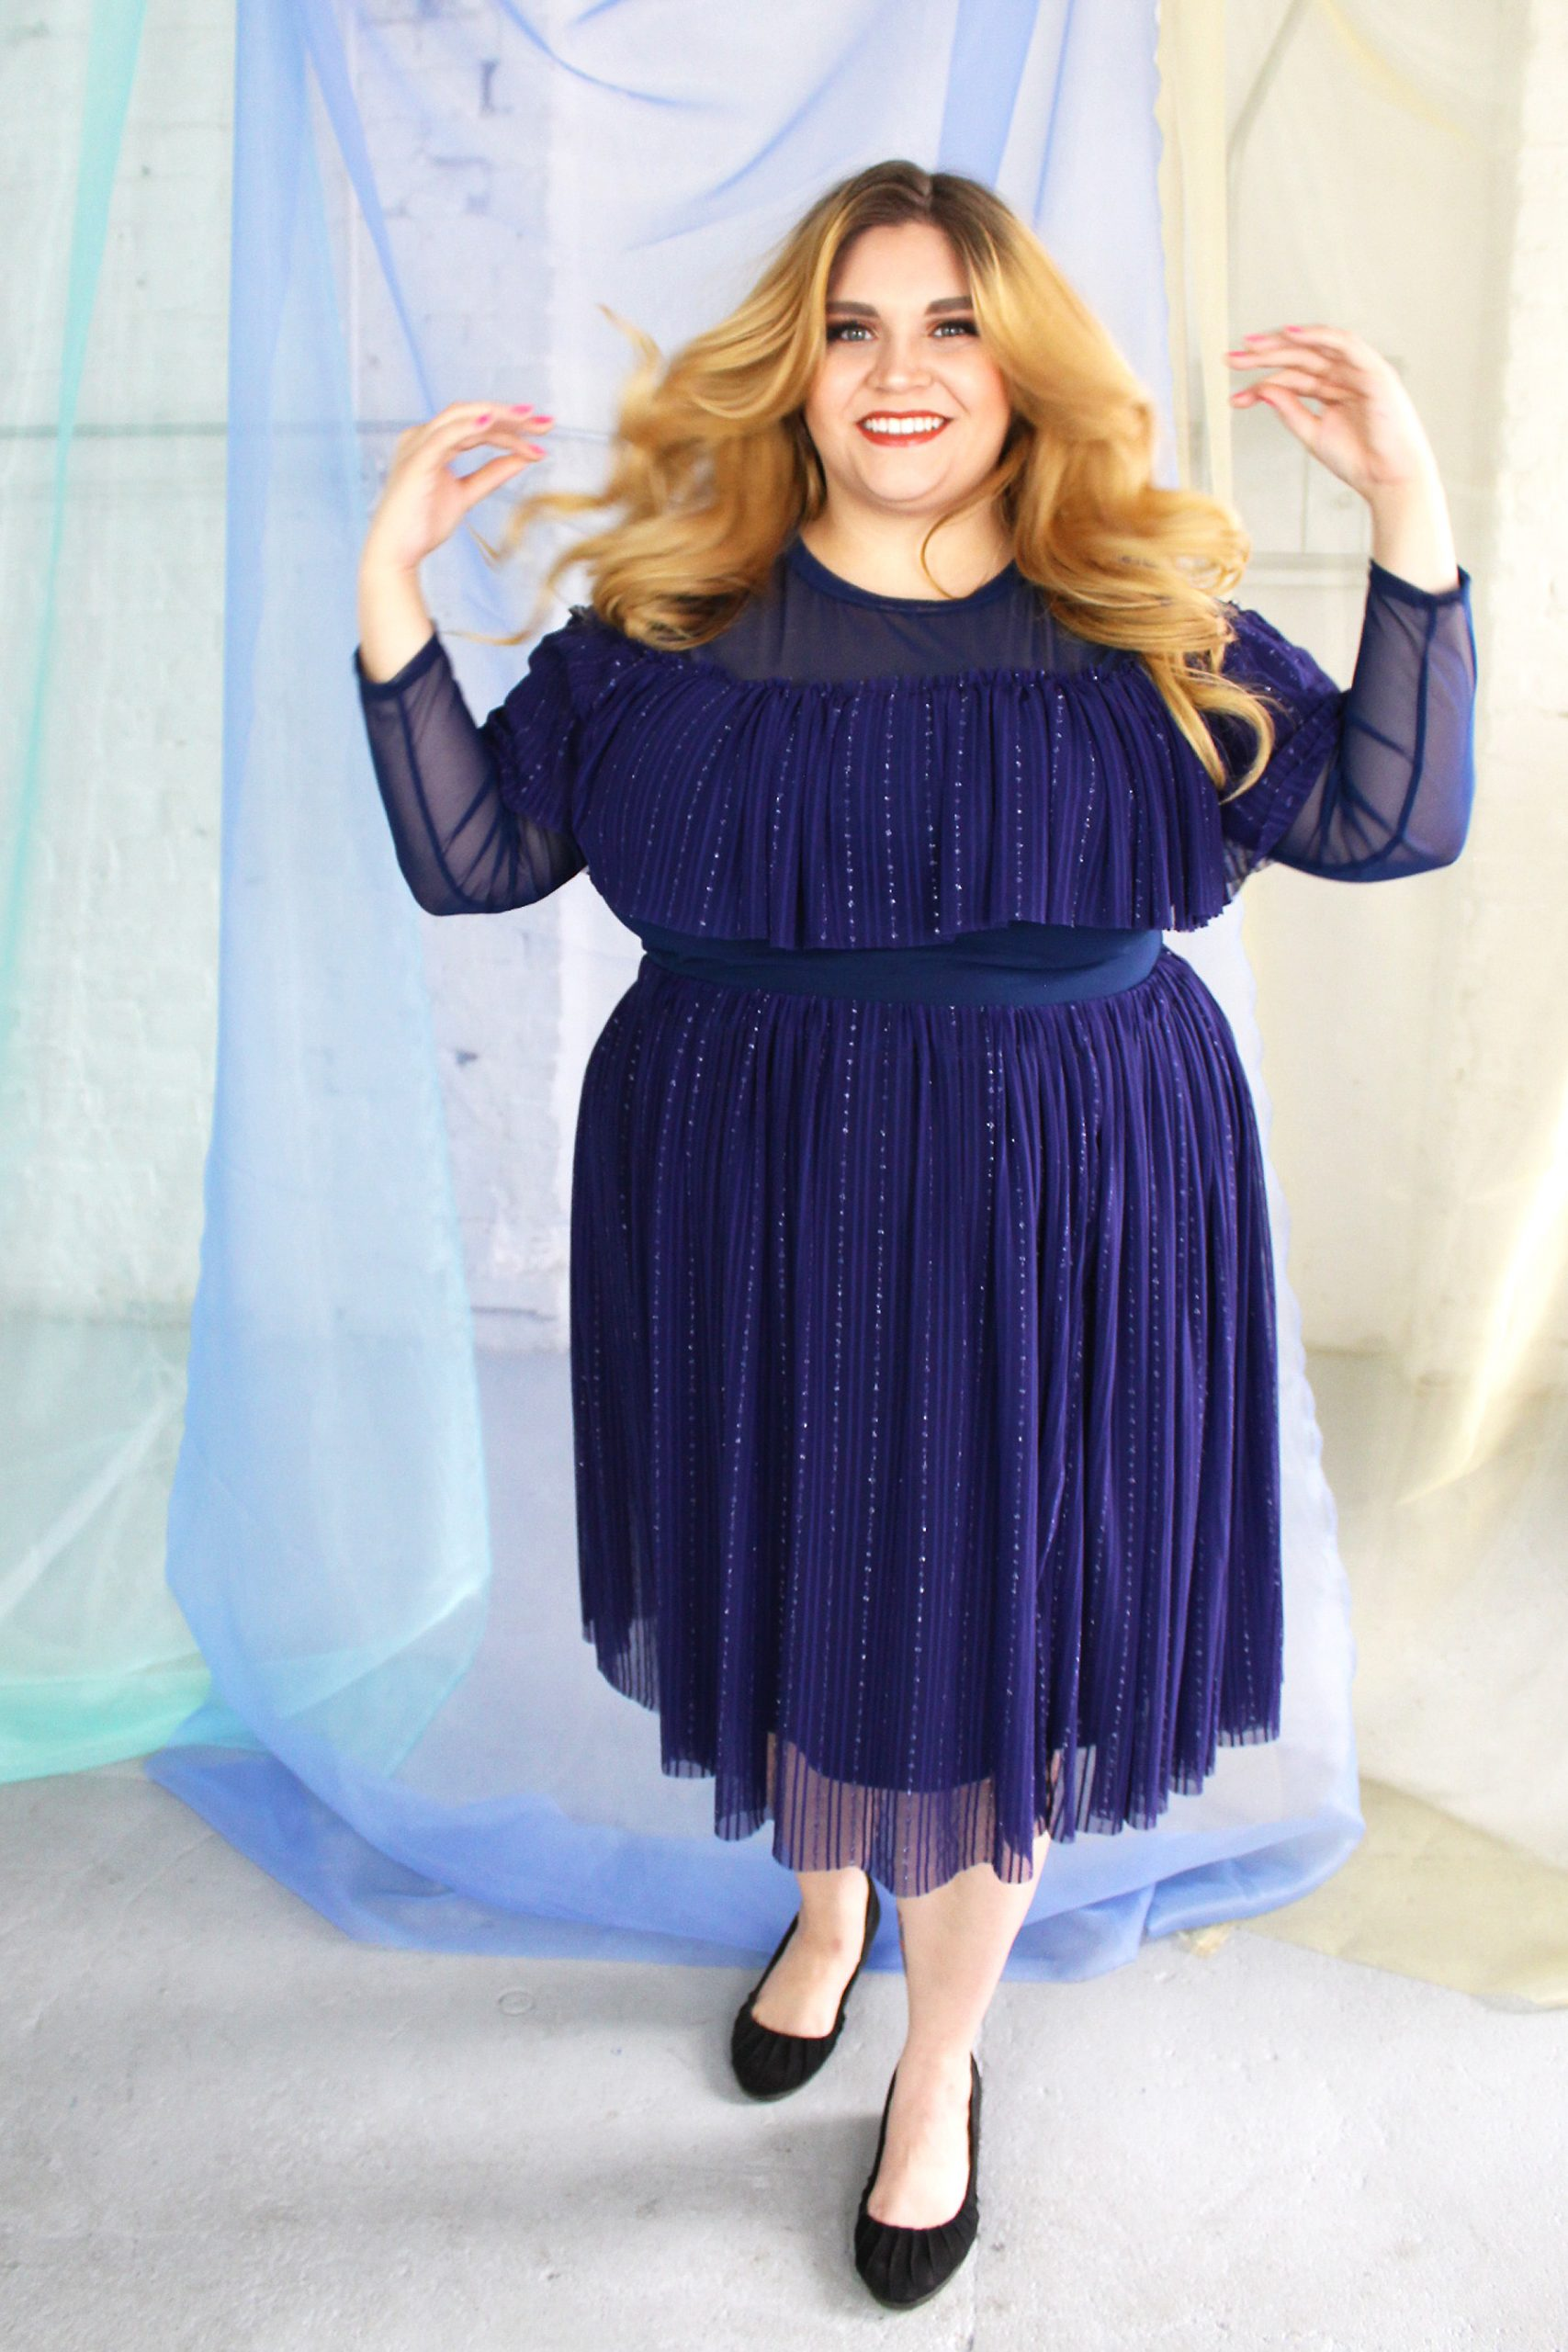 White blonde plus size model wearing navy classic blue mesh high neck long sleeved top with ruffle and matching skirt